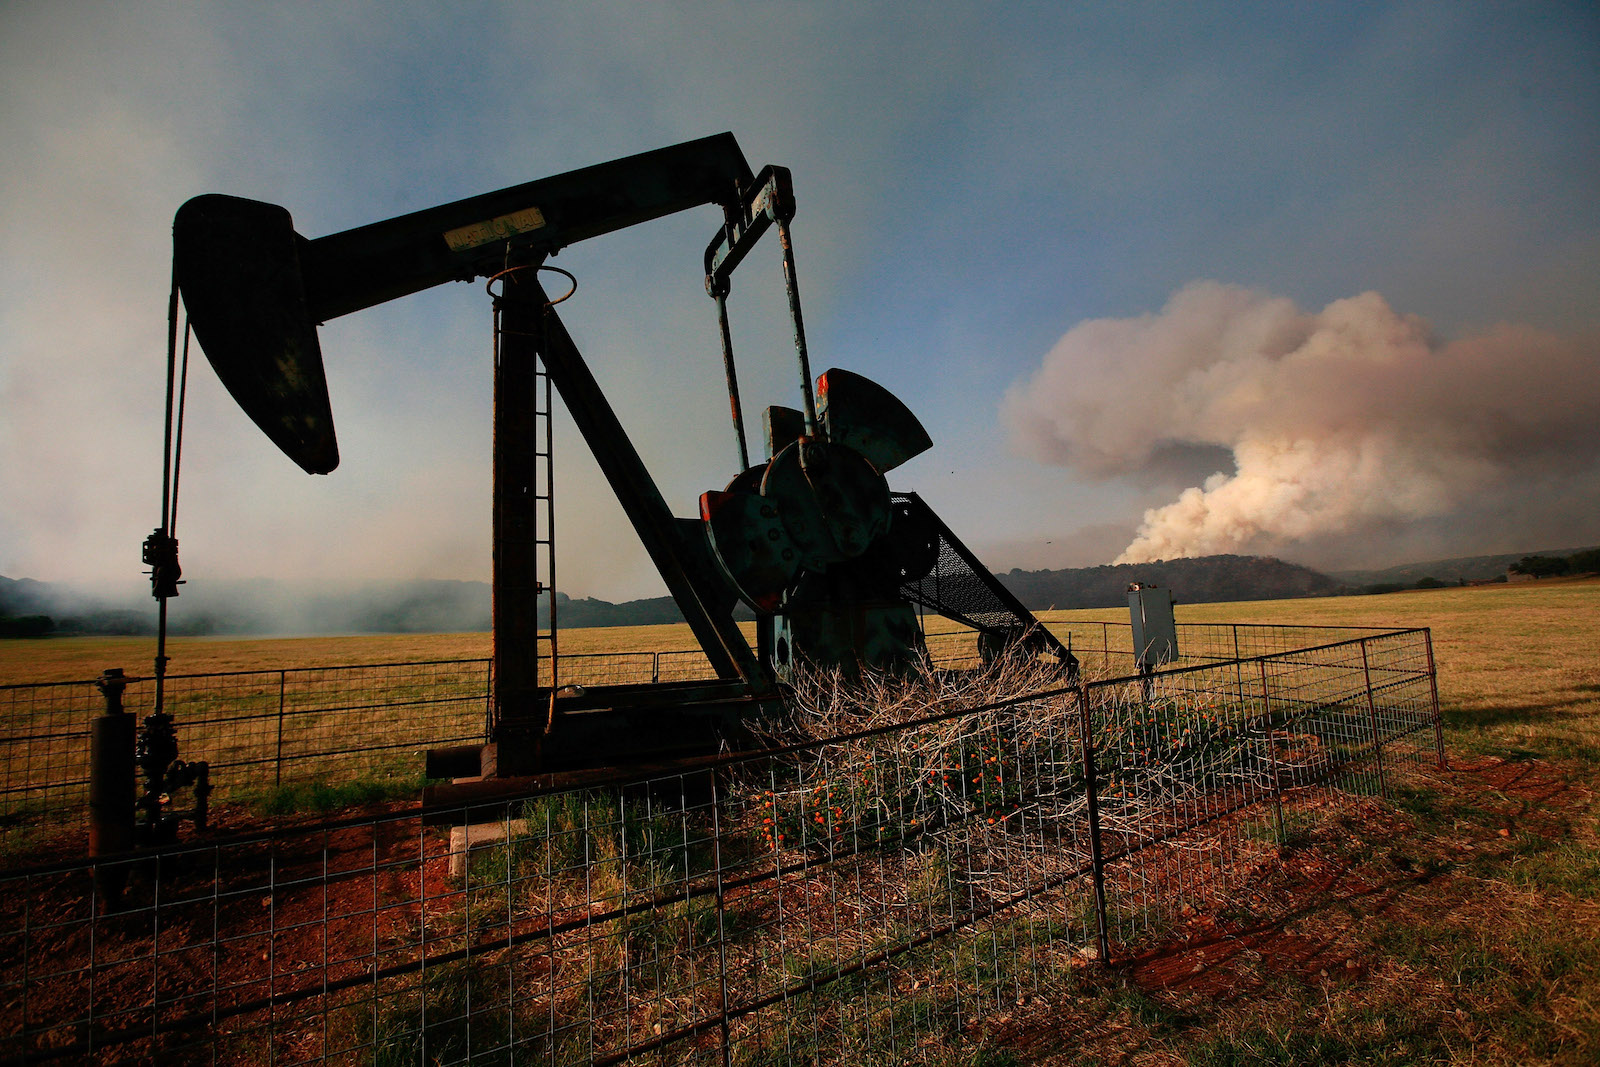 an oilfield pumpjack is silhouetted against a dry landscape. In the distance, a large white plume of smoke billows into a blue sky